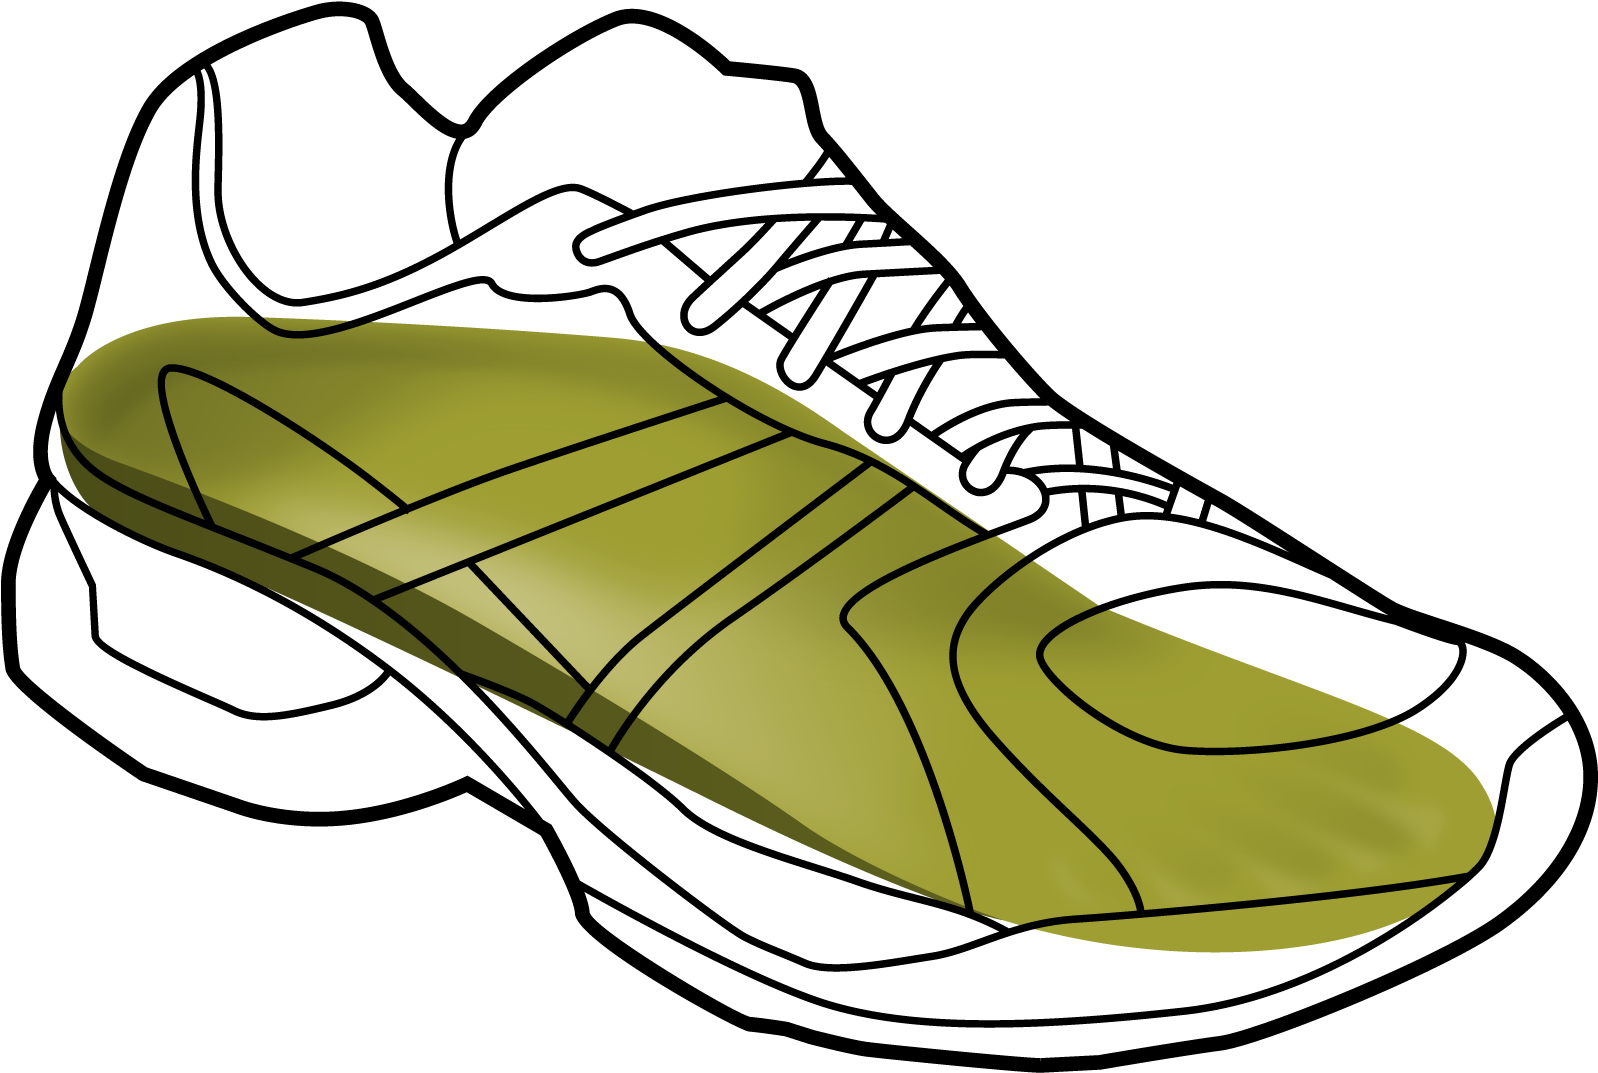 1598x1073 Download Running Shoe Drawing At Getdrawings